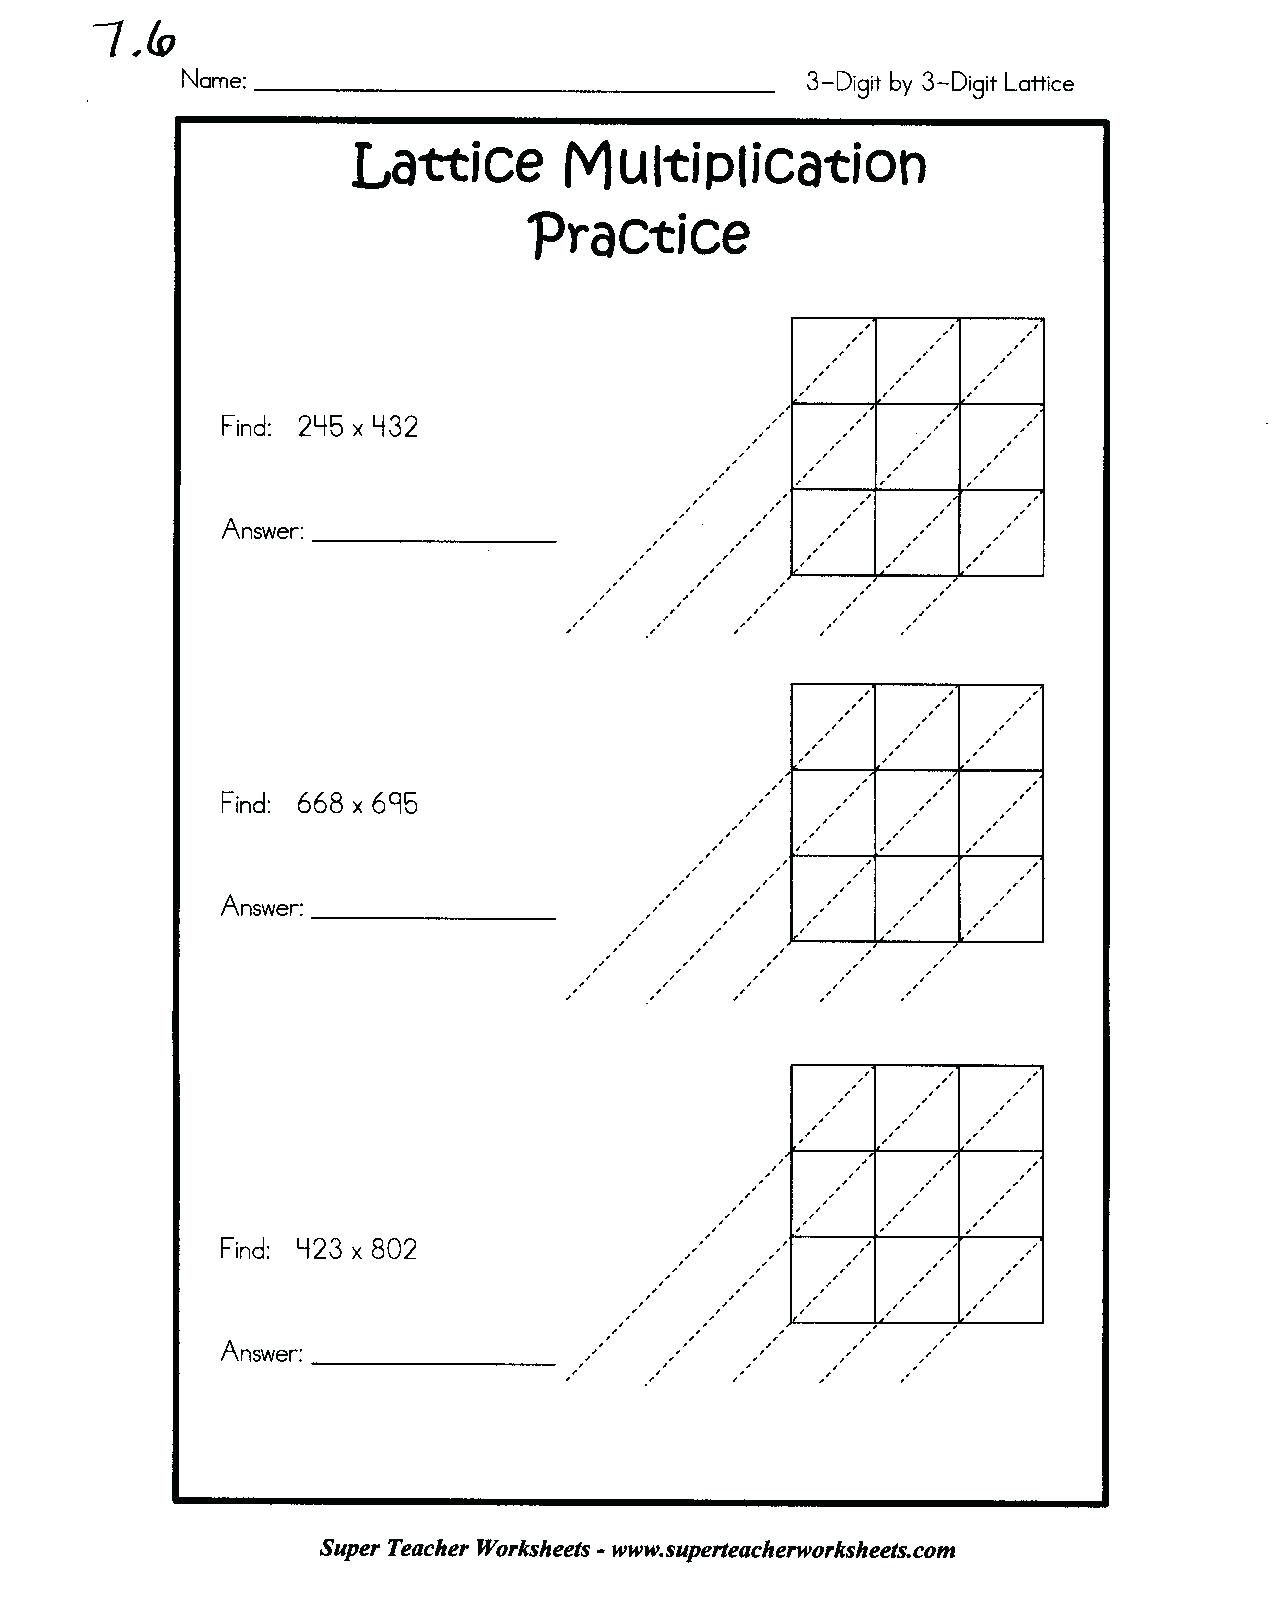 Printable Lattice Multiplication Worksheet 4Th Grade for Multiplication Worksheets Lattice